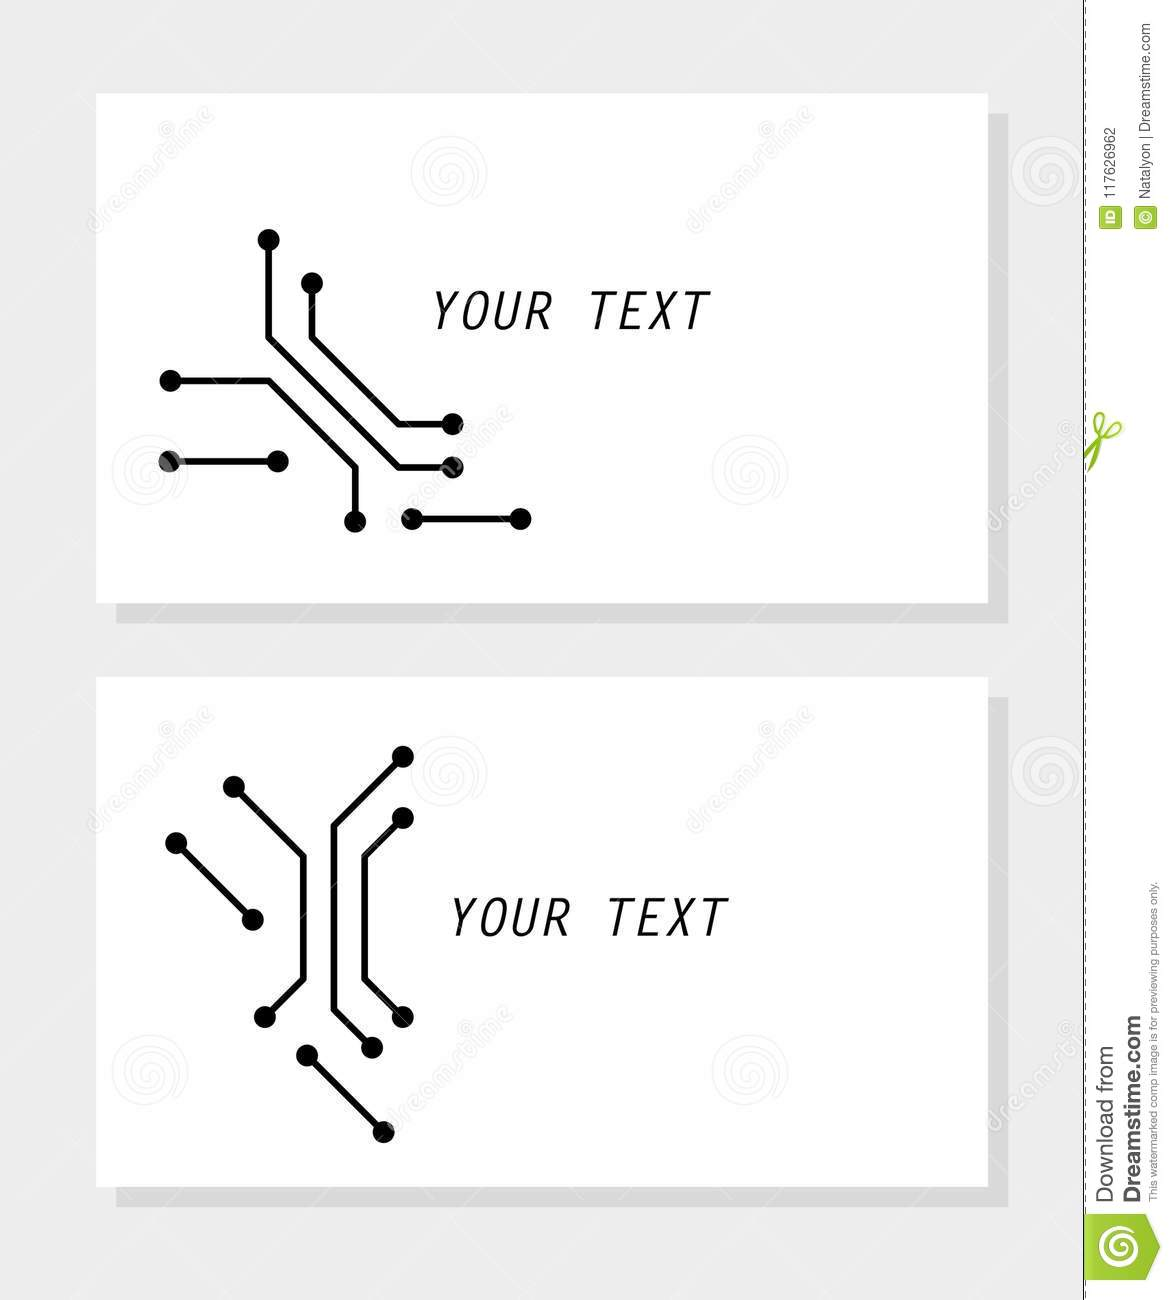 Printed Circuit Board Black And White Computer Technology Business Template Card Vector